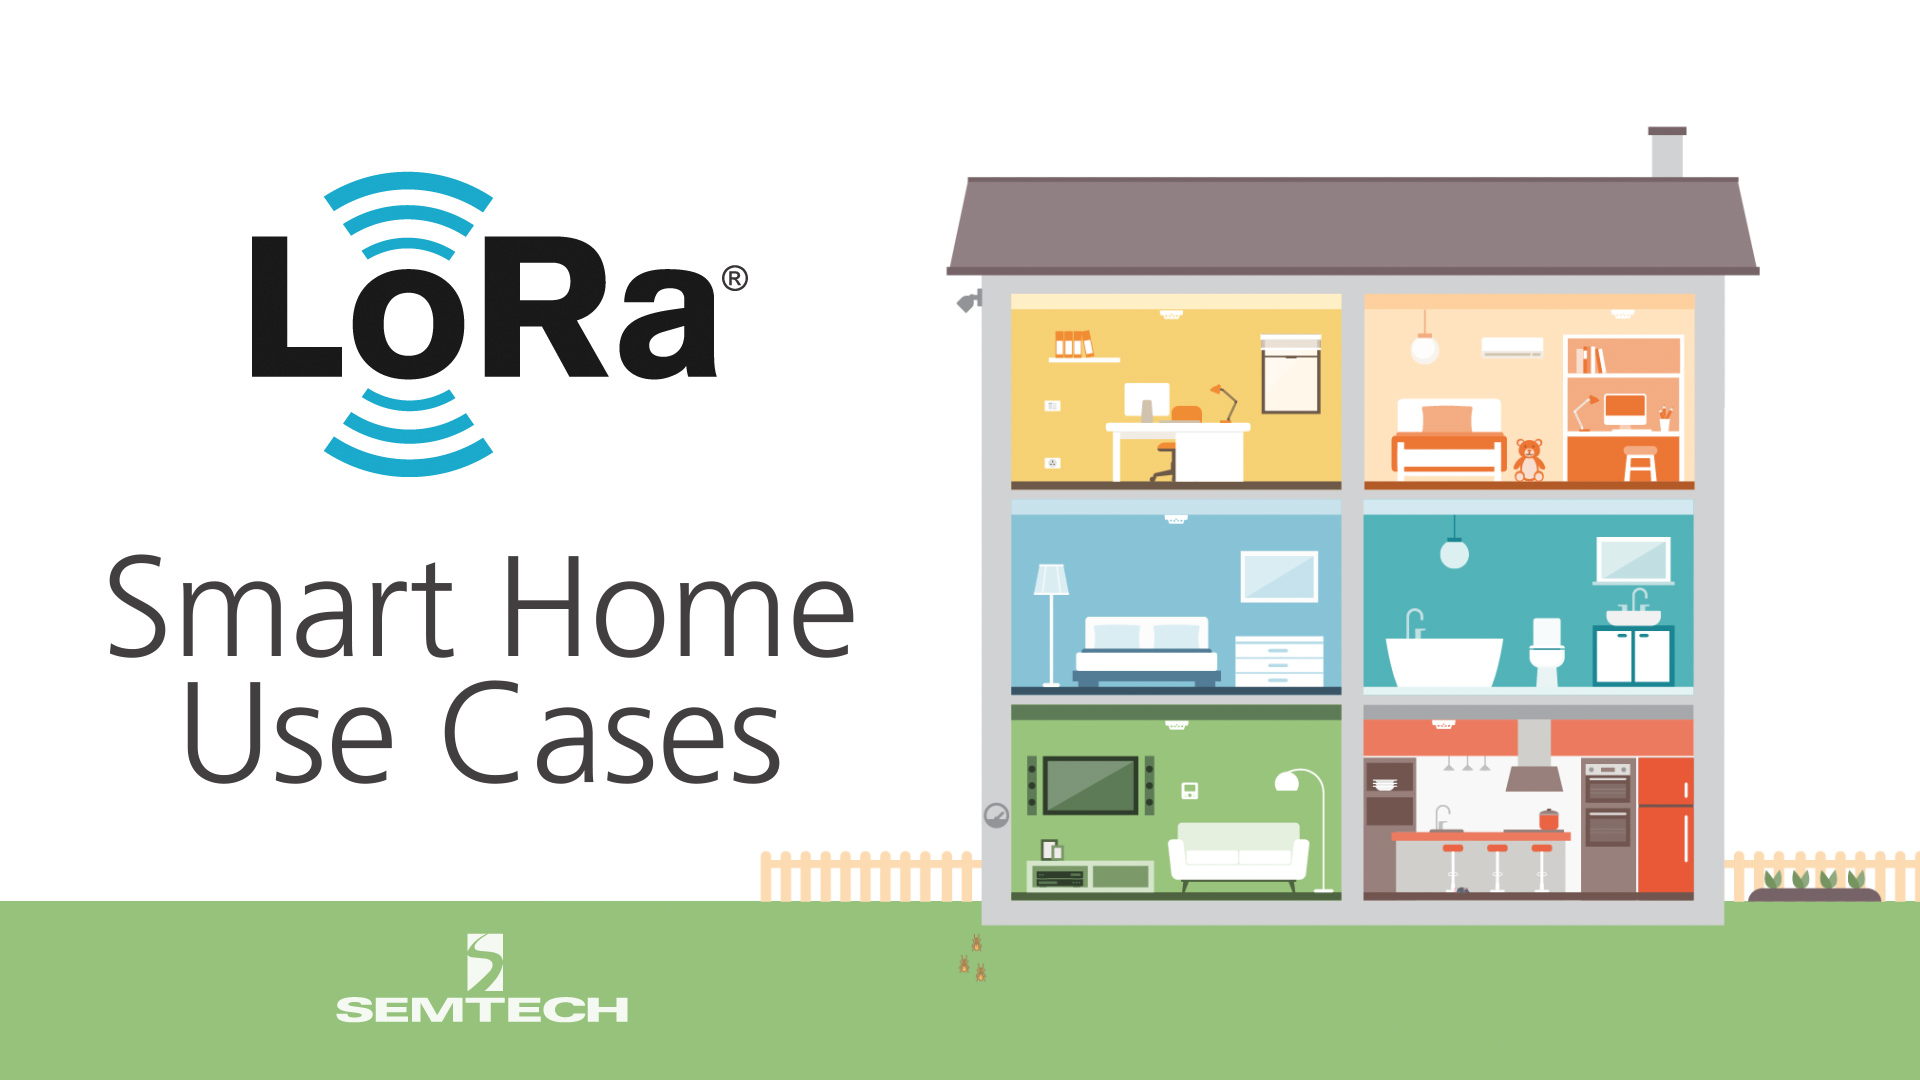 LoRa-enabled Smart Home & Building Innovations at CES and Beyond